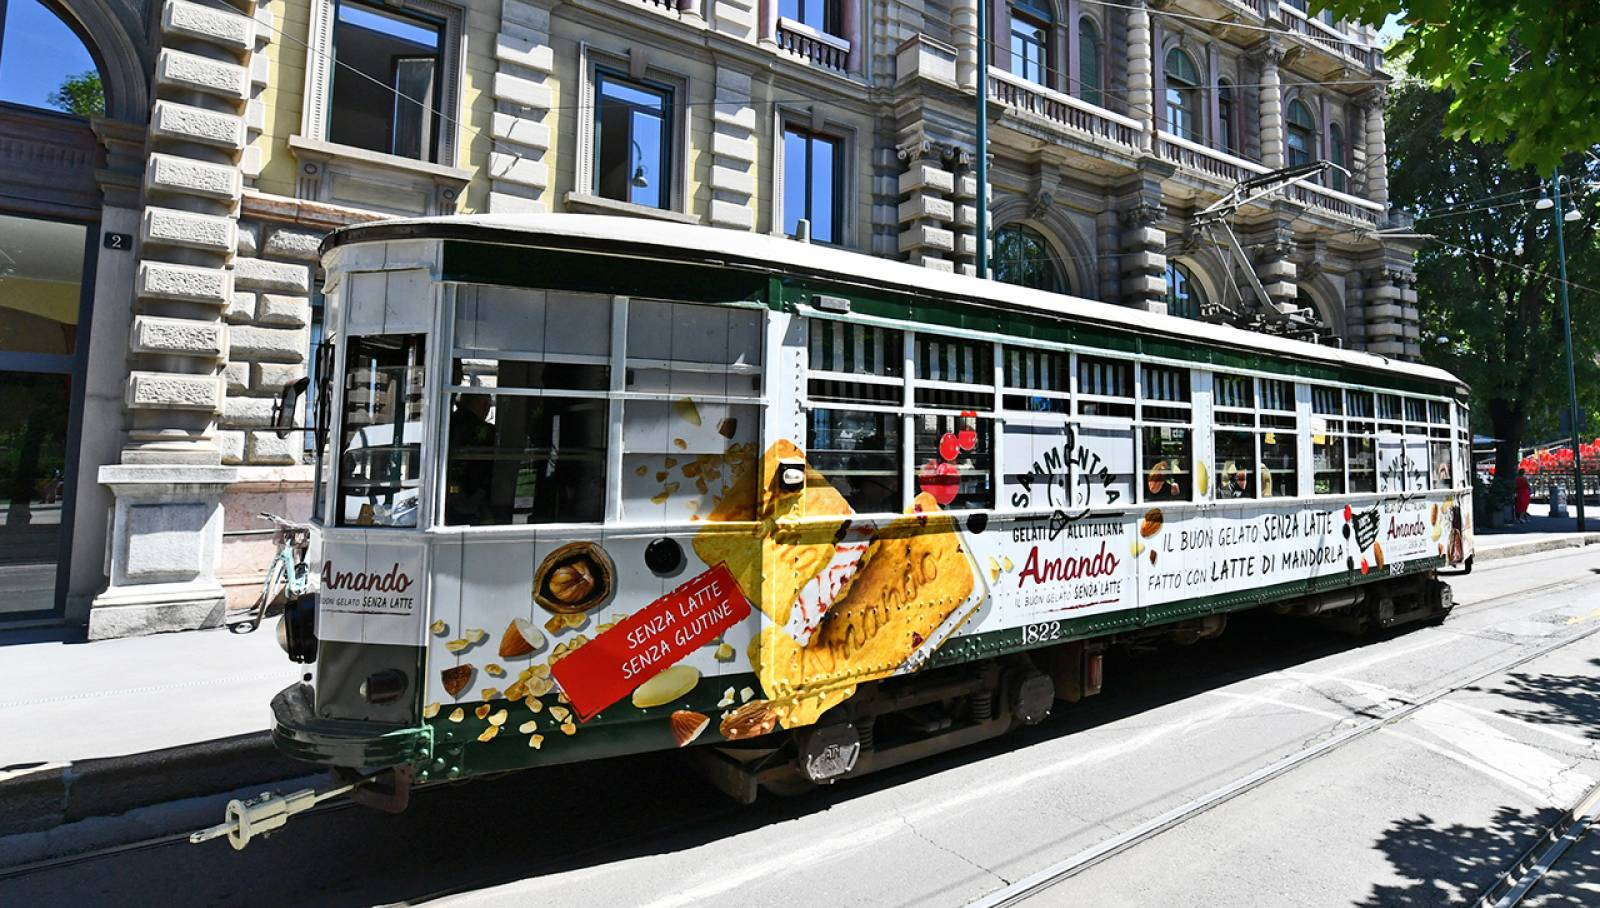 Out of Home advertising IGPDecaux Creative Solutions Special Tram for Sammontana